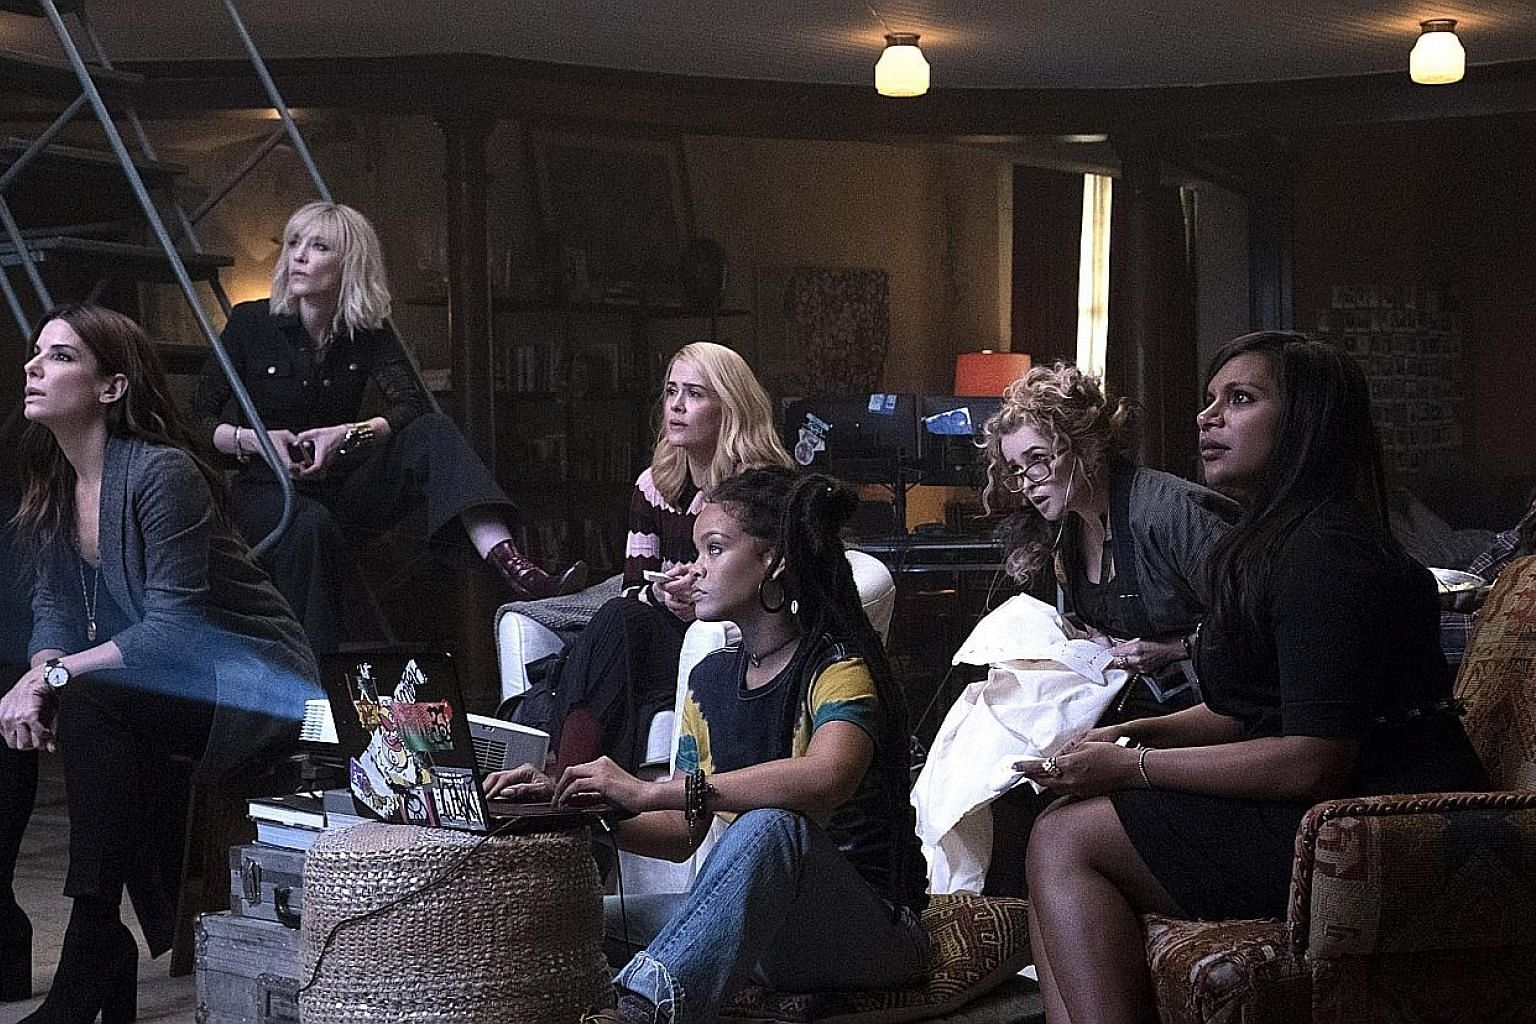 Sandra Bullock (far left) and Cate Blanchett (second from left) assemble a team to pull off an elaborate heist.